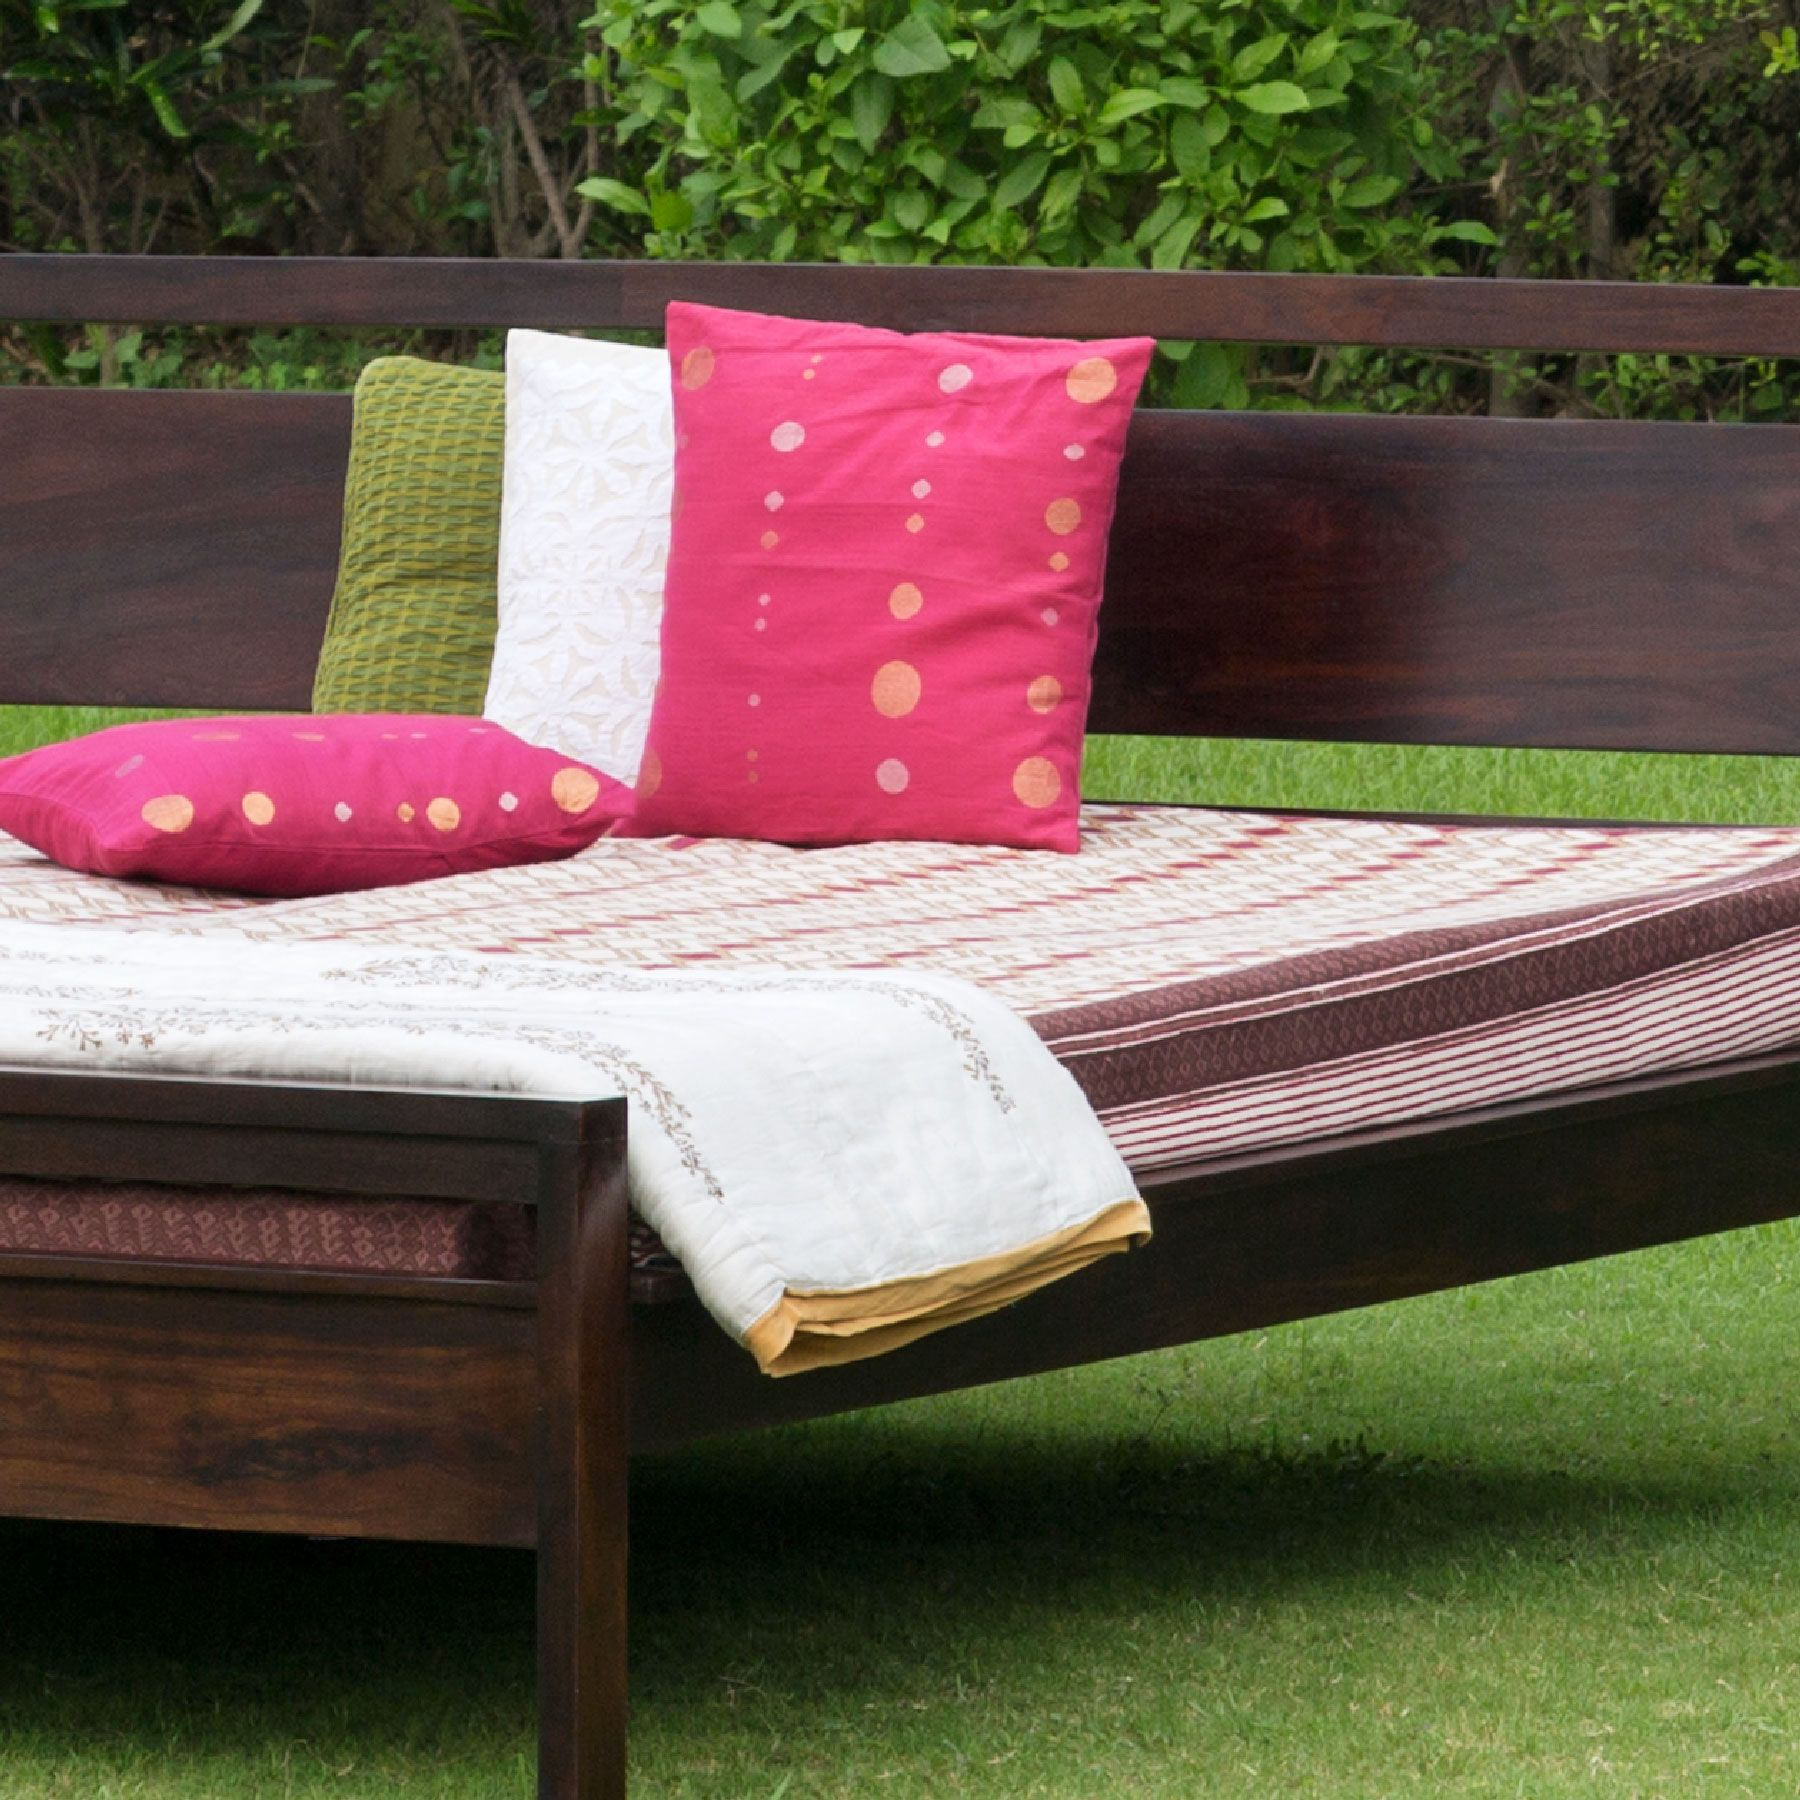 #furniture #wood #bed #cushions #linen #bedroom #colours